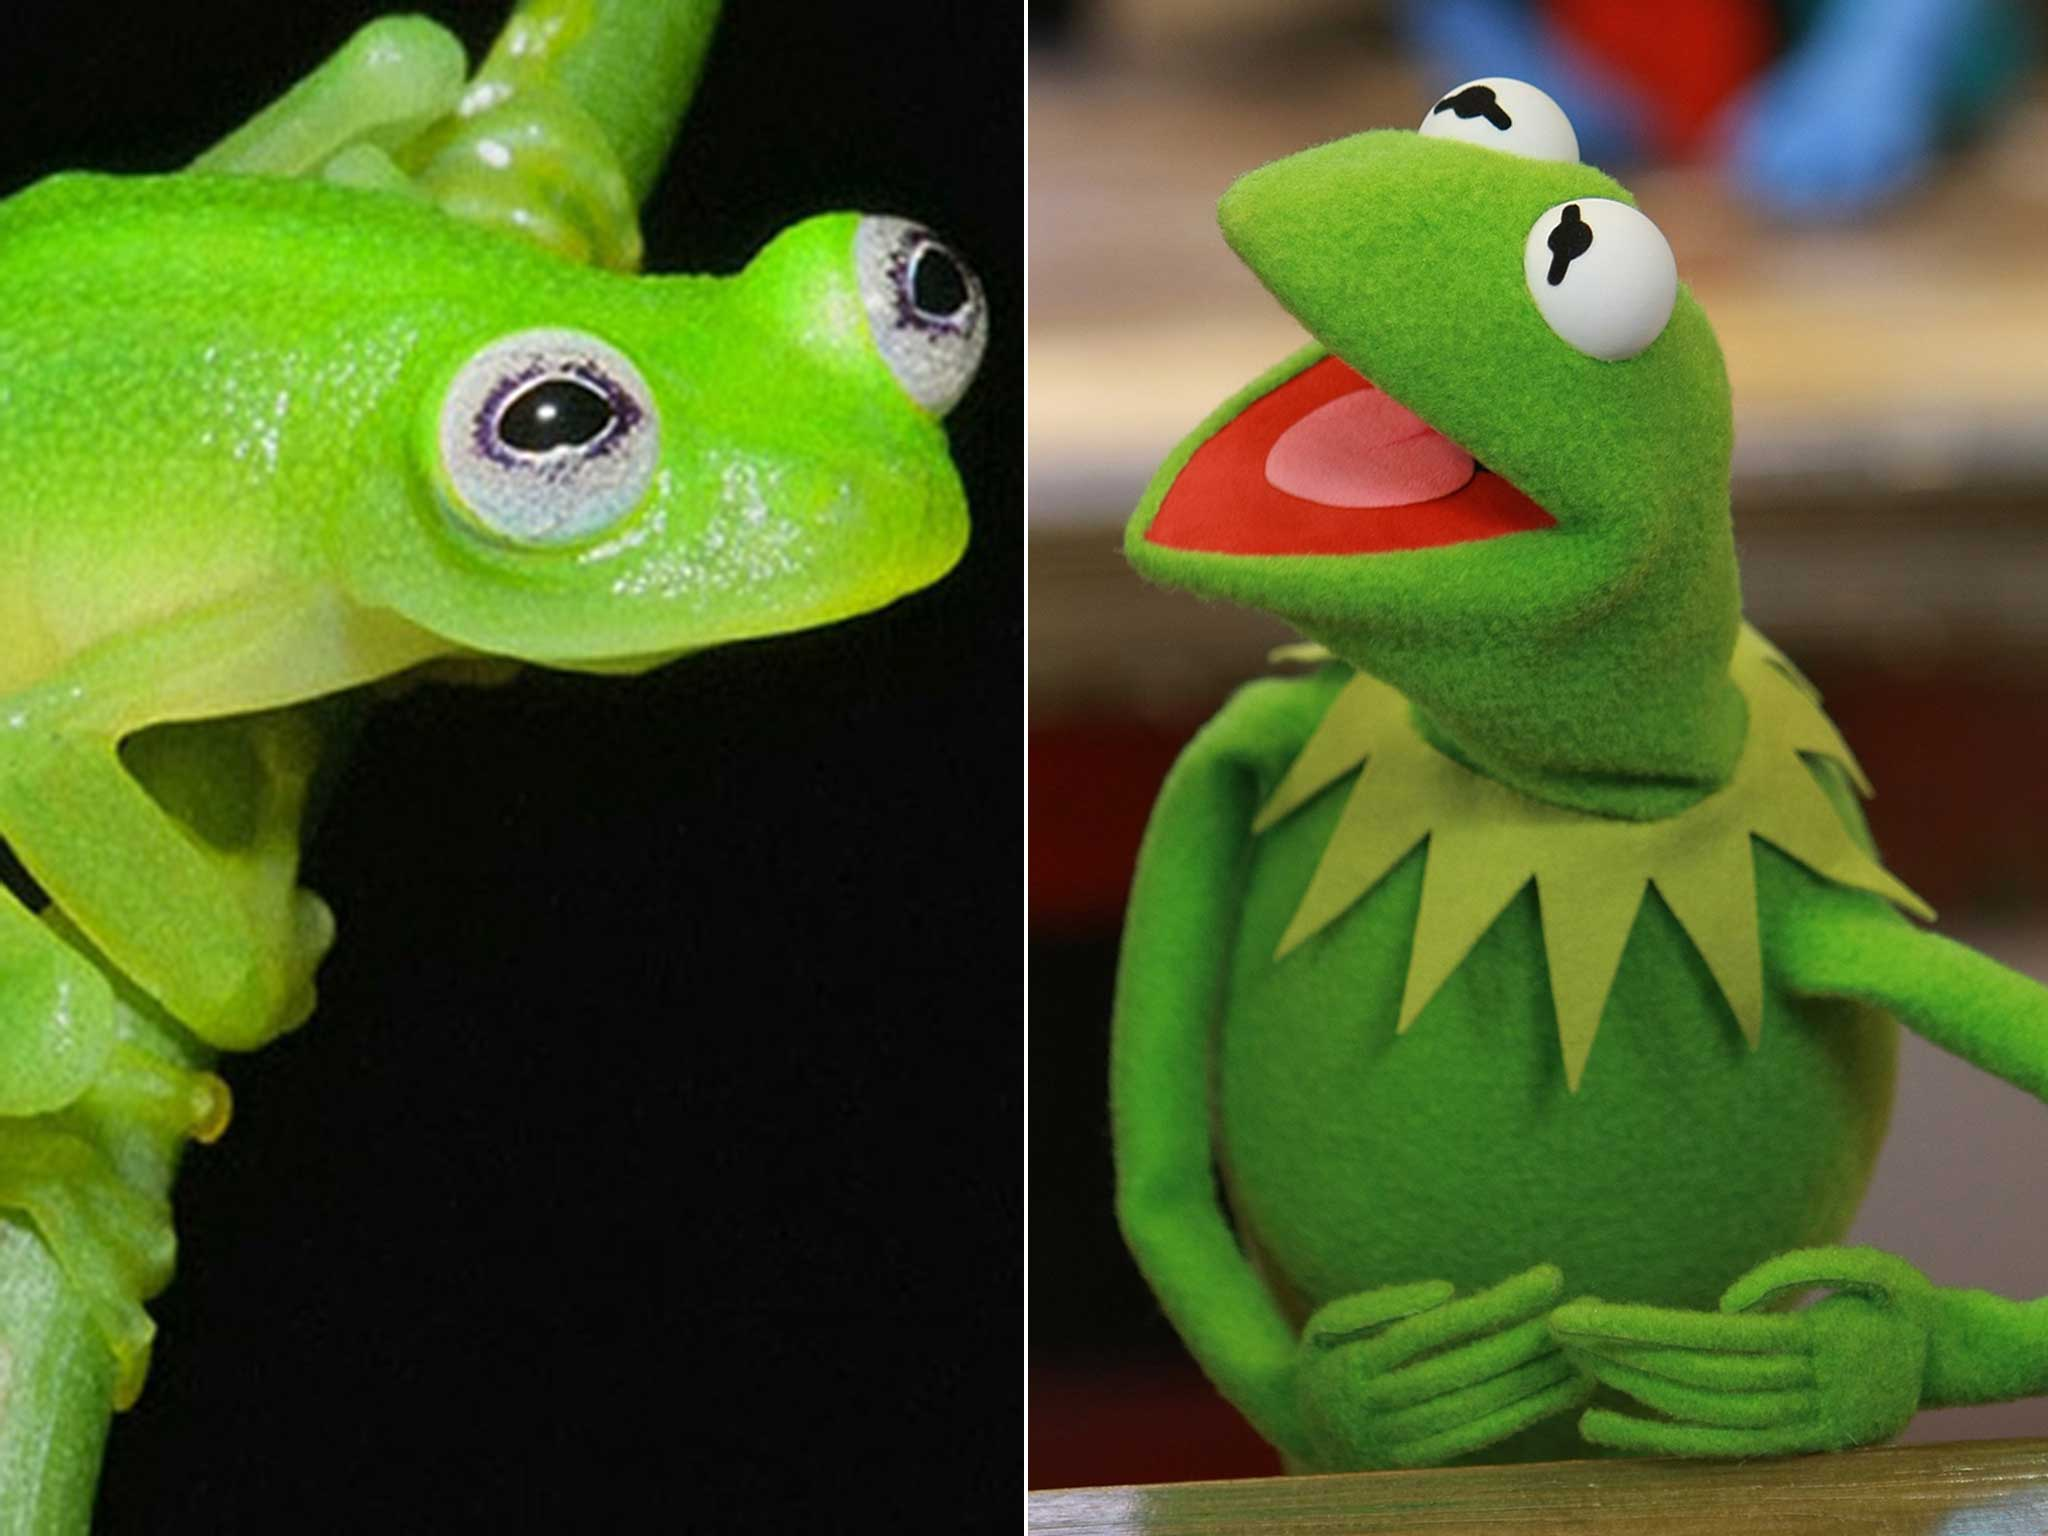 Kermit Reacts To News There S A Frog That Looks Exactly Like Him We Re Cousins Googly Eyes Run In Our Family The Independent The Independent Κάνε κλικ τώρα για να δείς το kermit goes cordless βίντεο δωρεάν. kermit reacts to news there s a frog